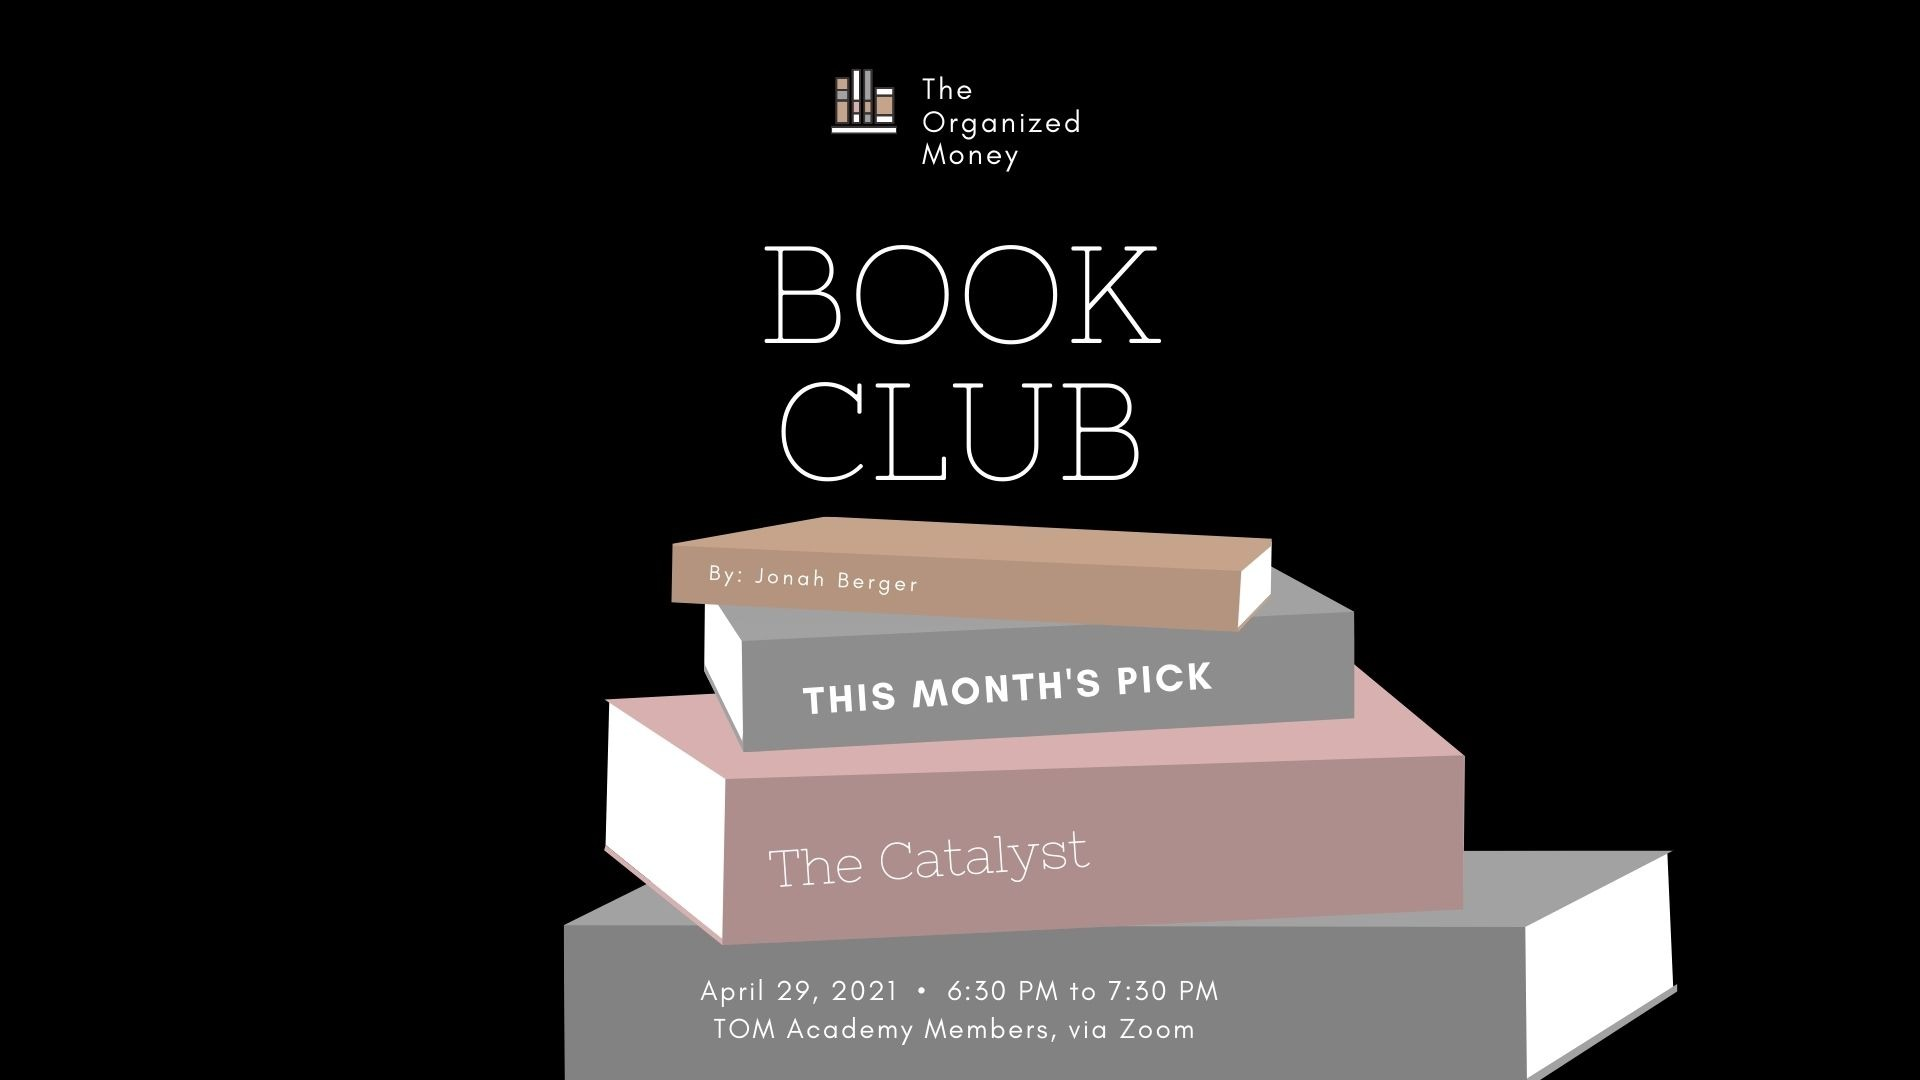 How To Change People's Minds: Book Club - The Catalyst